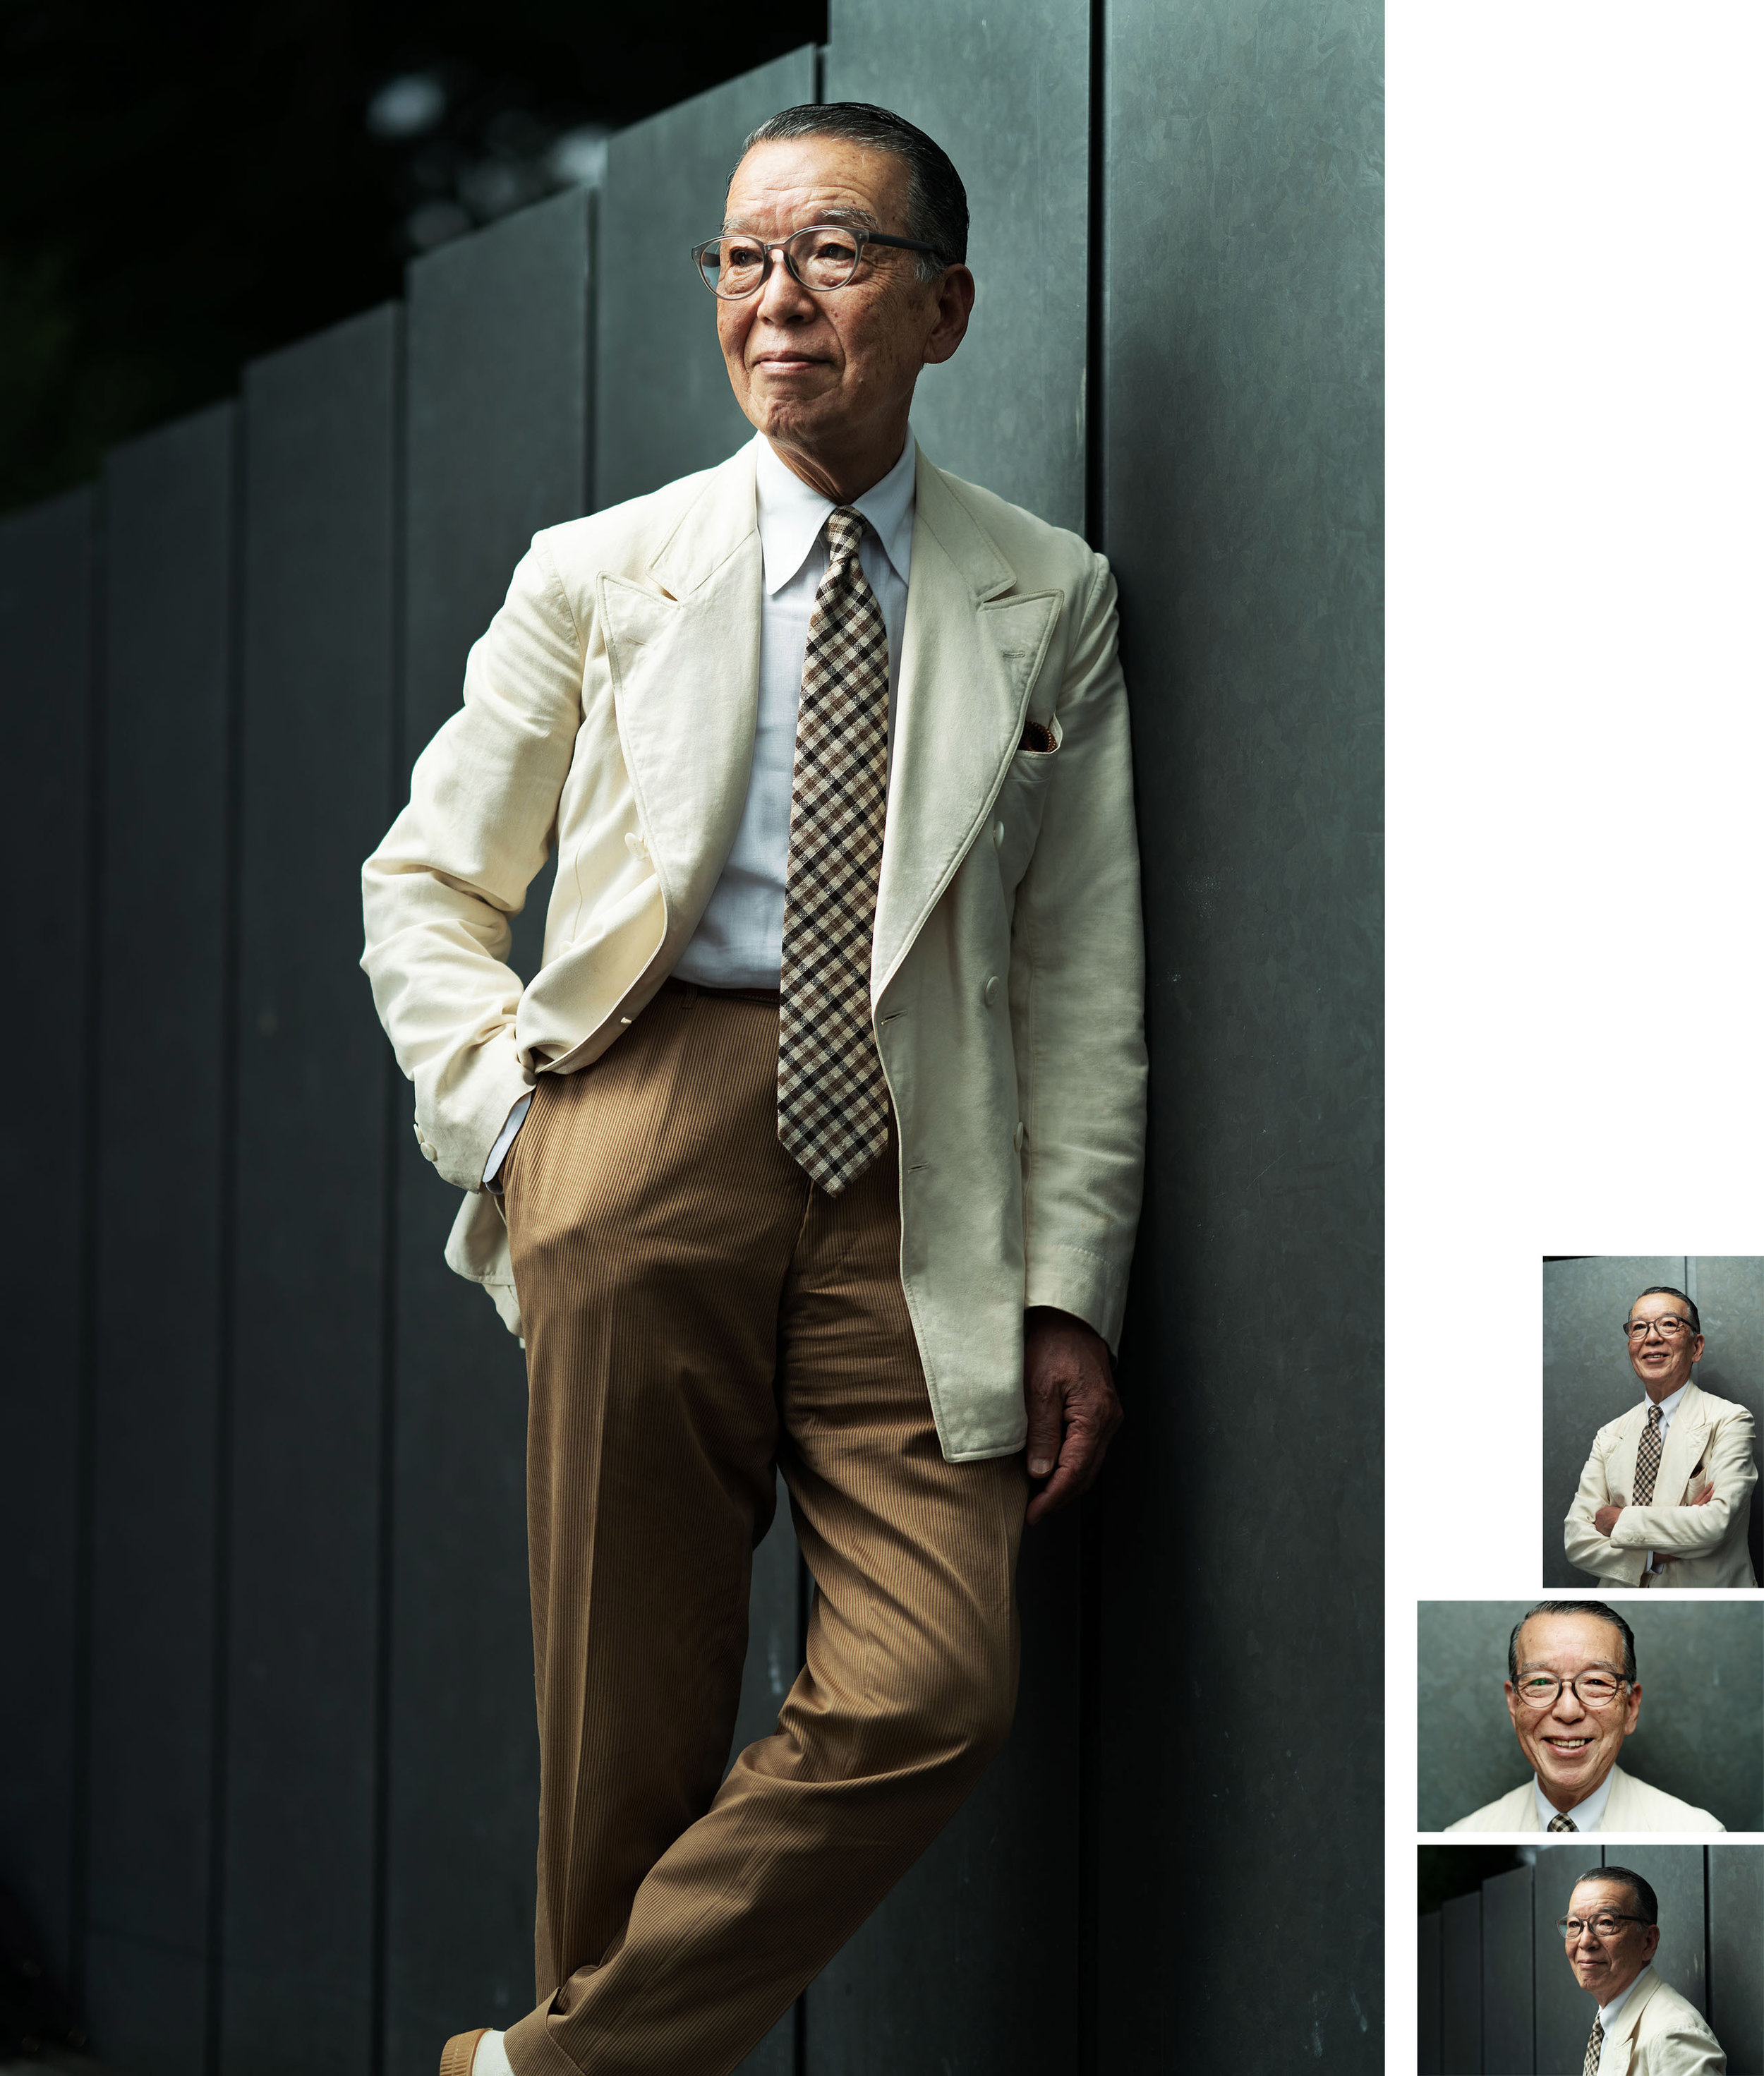 Yukio Akamine - EditorialMedia: Stills & VideoComing soon is a Documentary on Living style legend Yukio Akamine. I was lucky enough to meet Yukio Akamine through a mutual friend. For those who don't already know him he is a an advisor of style, a gentlemen of class and one of the leaders of Japanese Male fashion. He is inspired by the classics, loves vintage and old Carrie Grant movies.He champions not only fashion but a gentlemans lifestyle that has blended European fashion influneces with the japanese Bushido spirit and tradition.